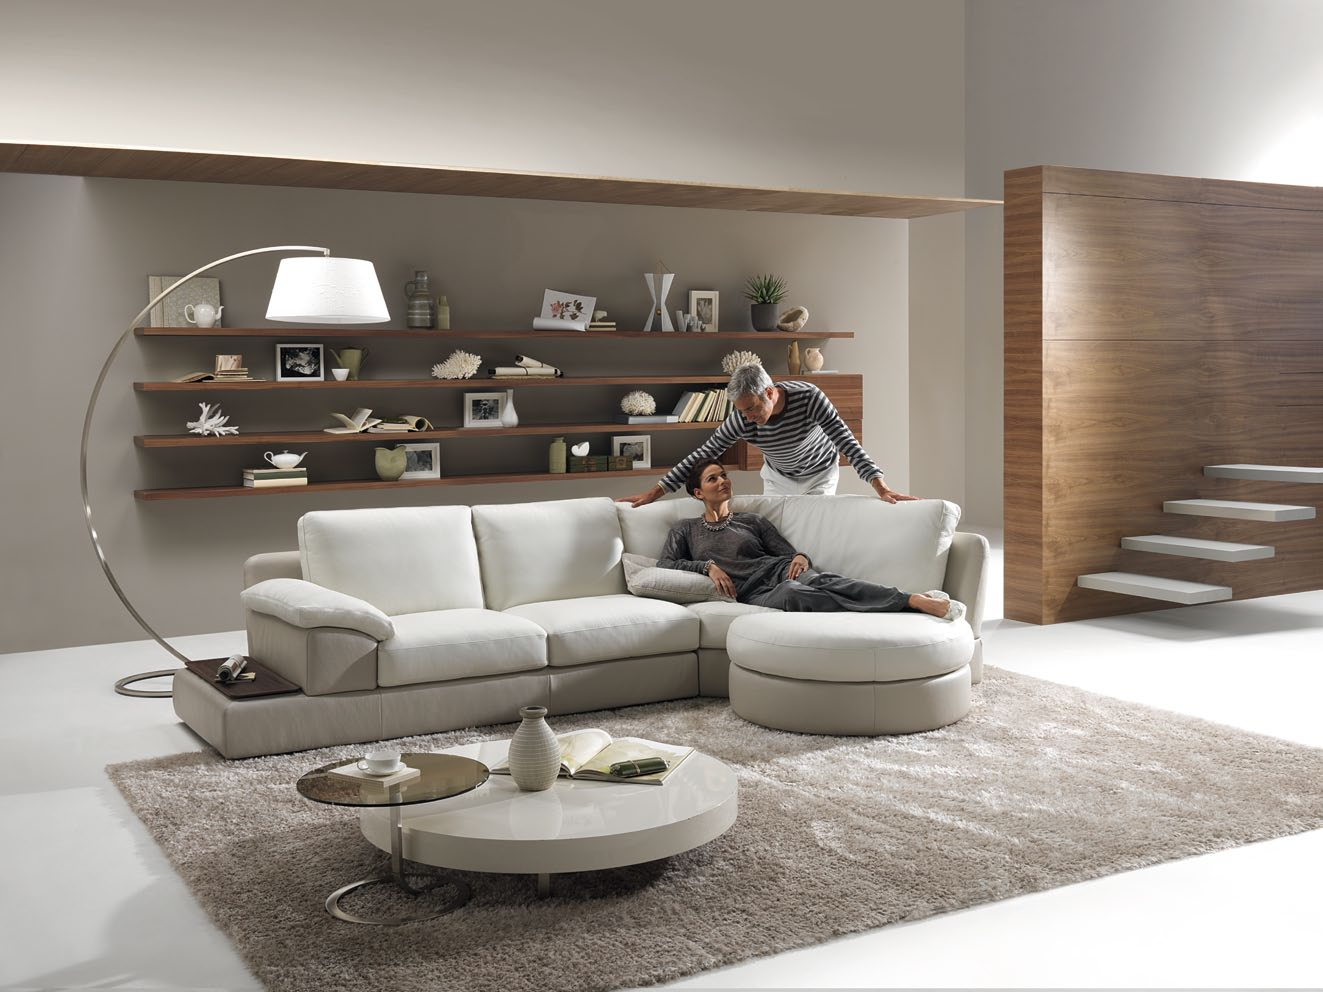 Home » Living Room Design Ideas by NATUZZI » Living Room with Odessa ...